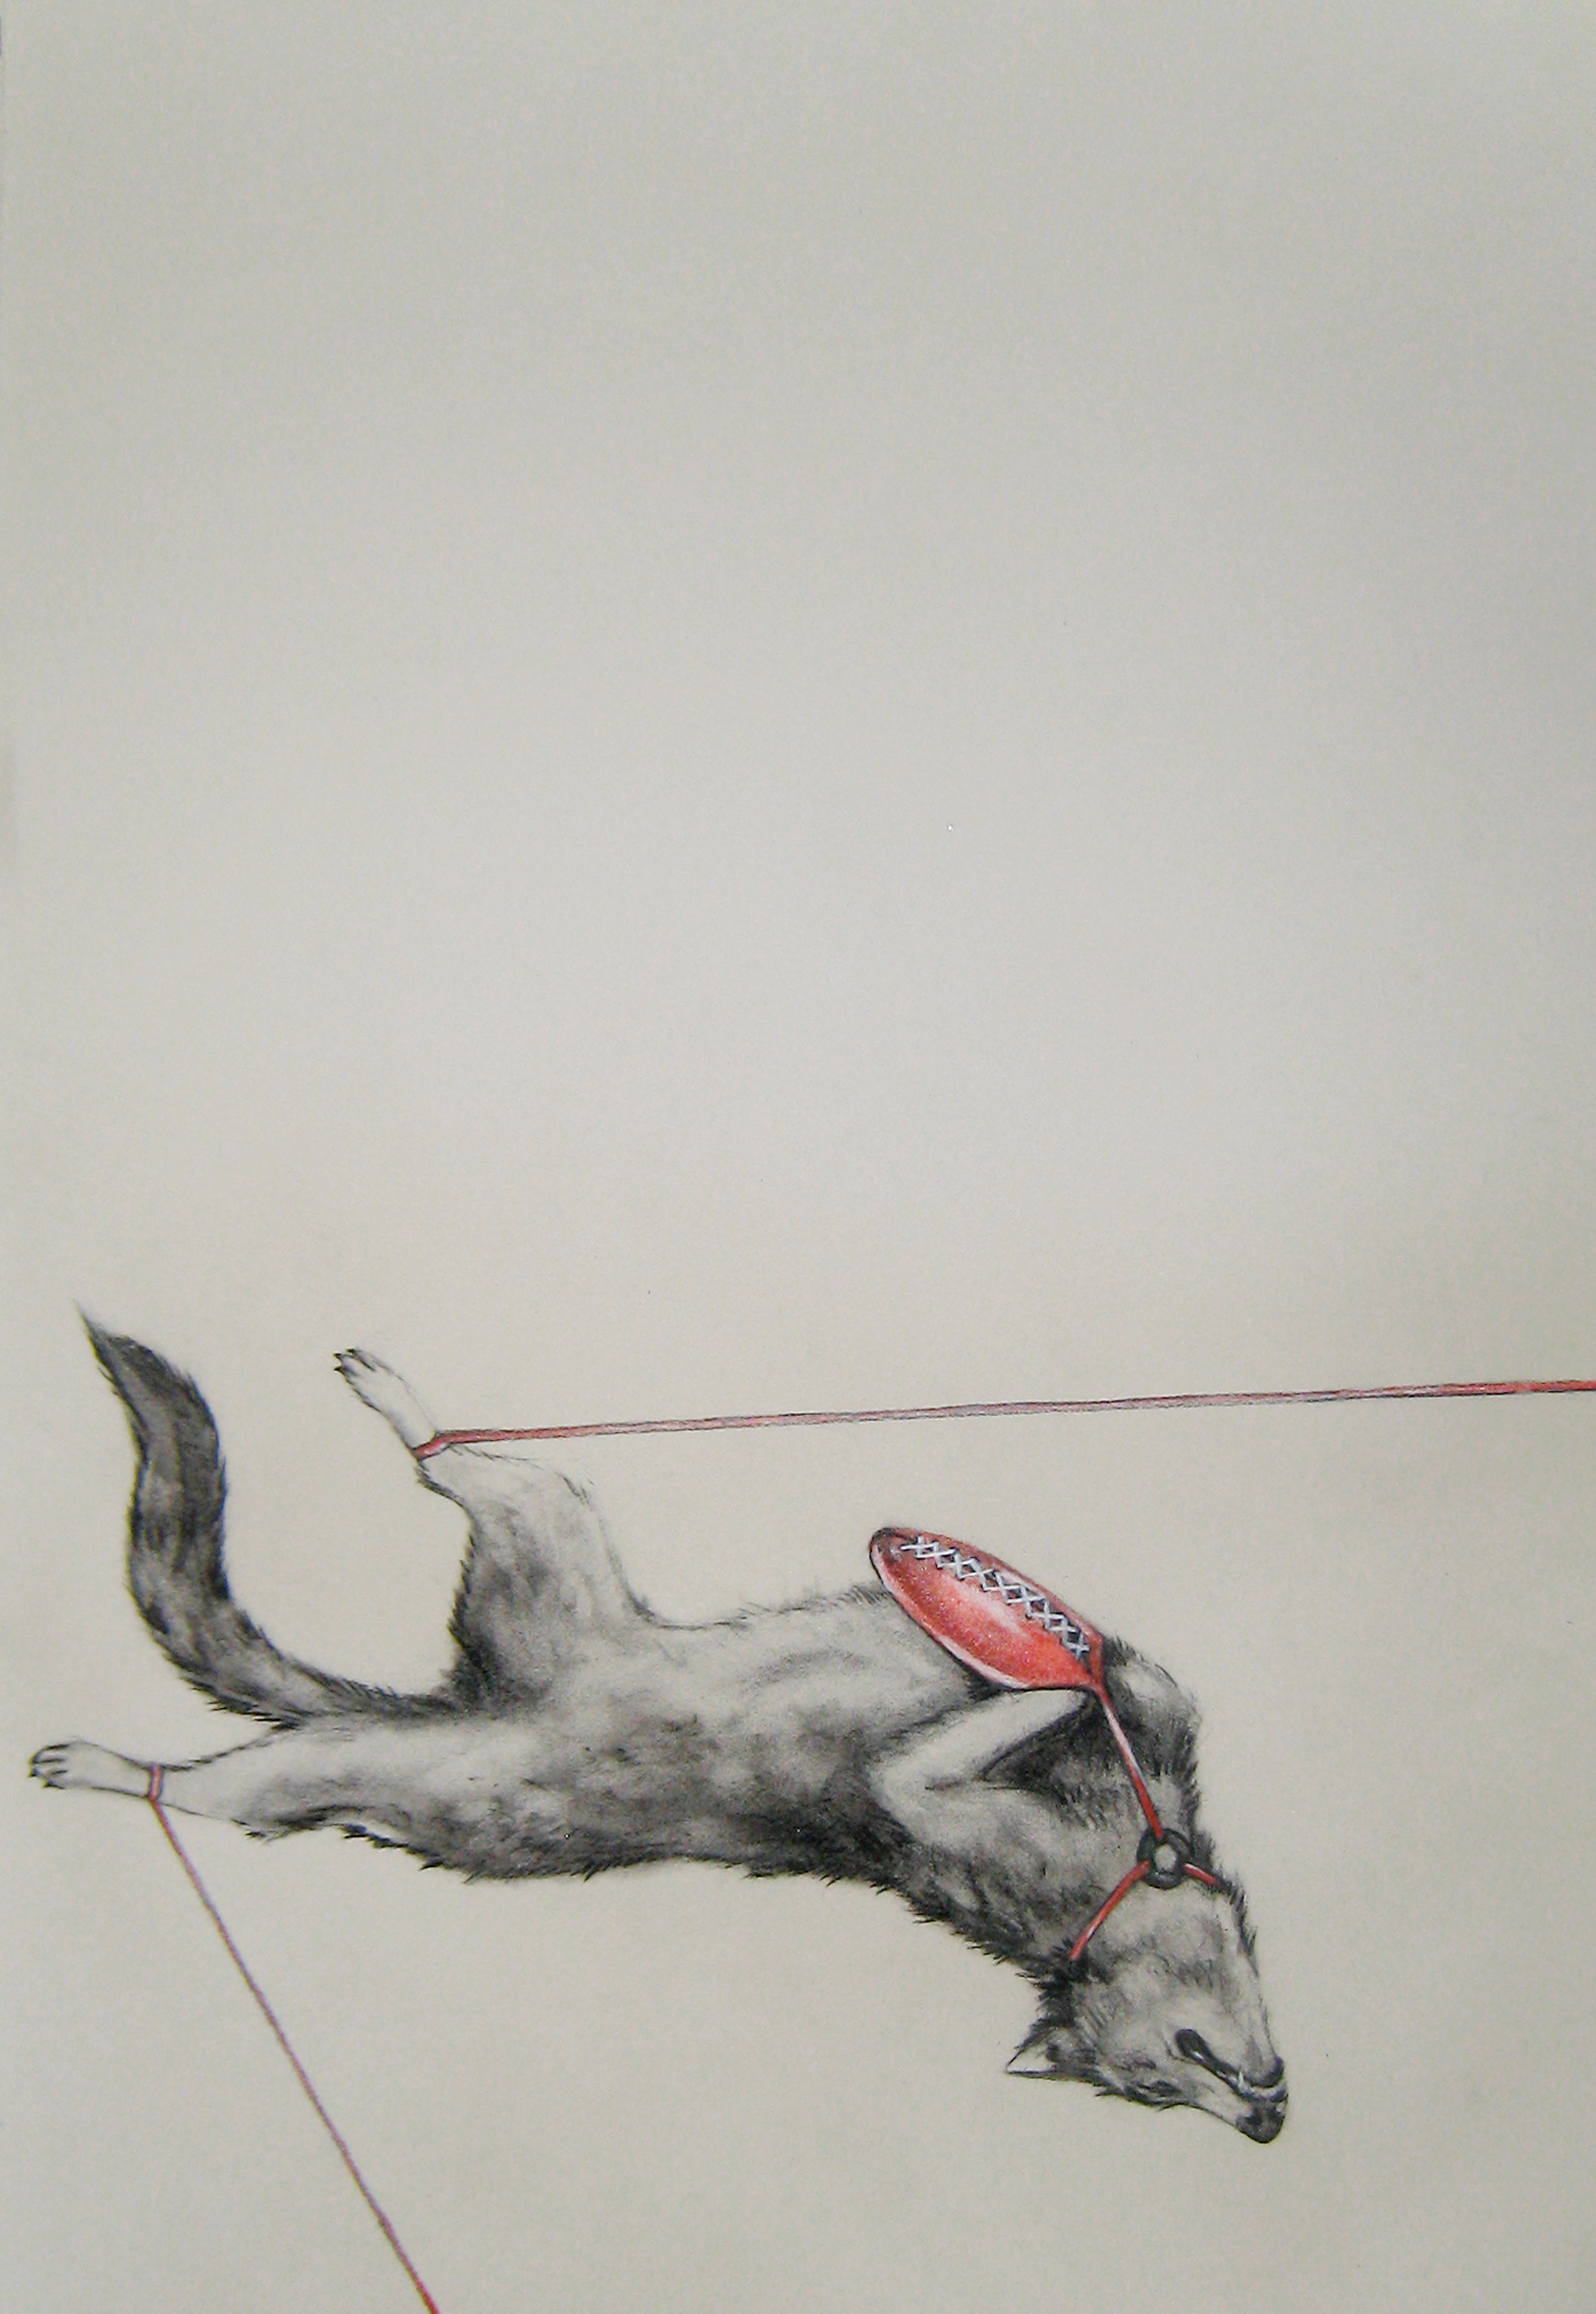 """Walk of Fame 2, 2012  Charcoal and pencil on paper  14x22"""""""